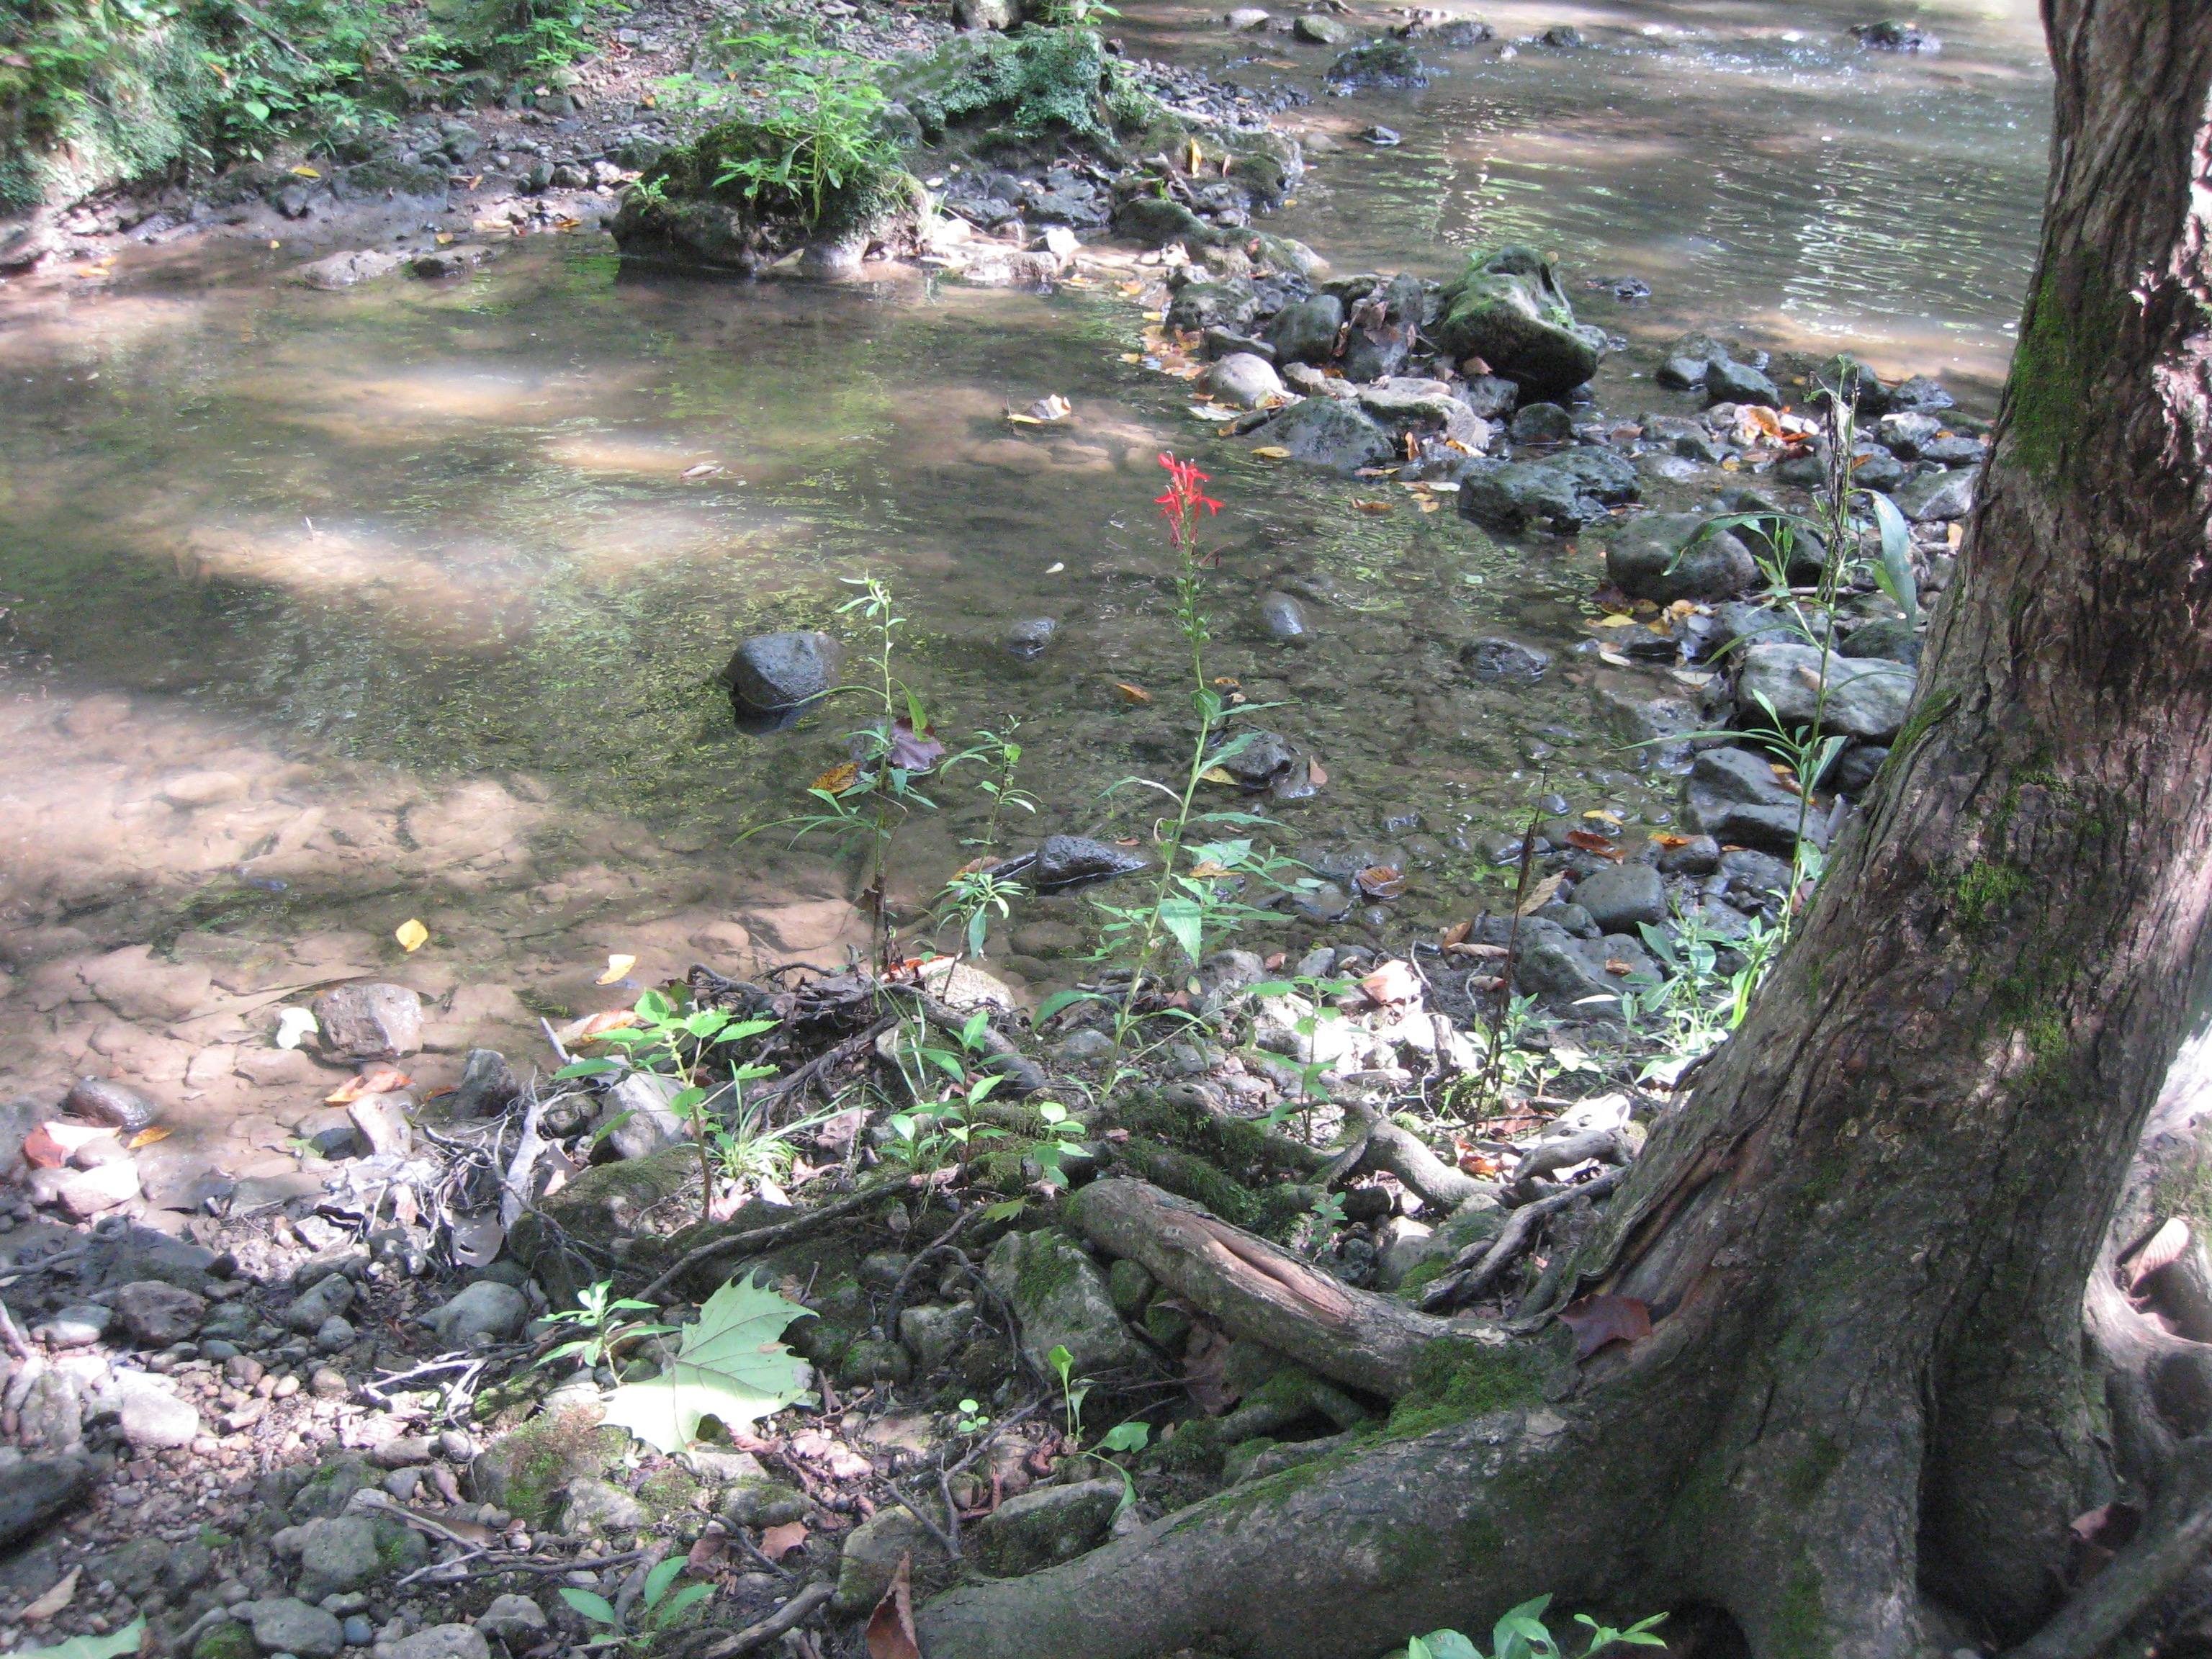 stream, red flower, and tree roots